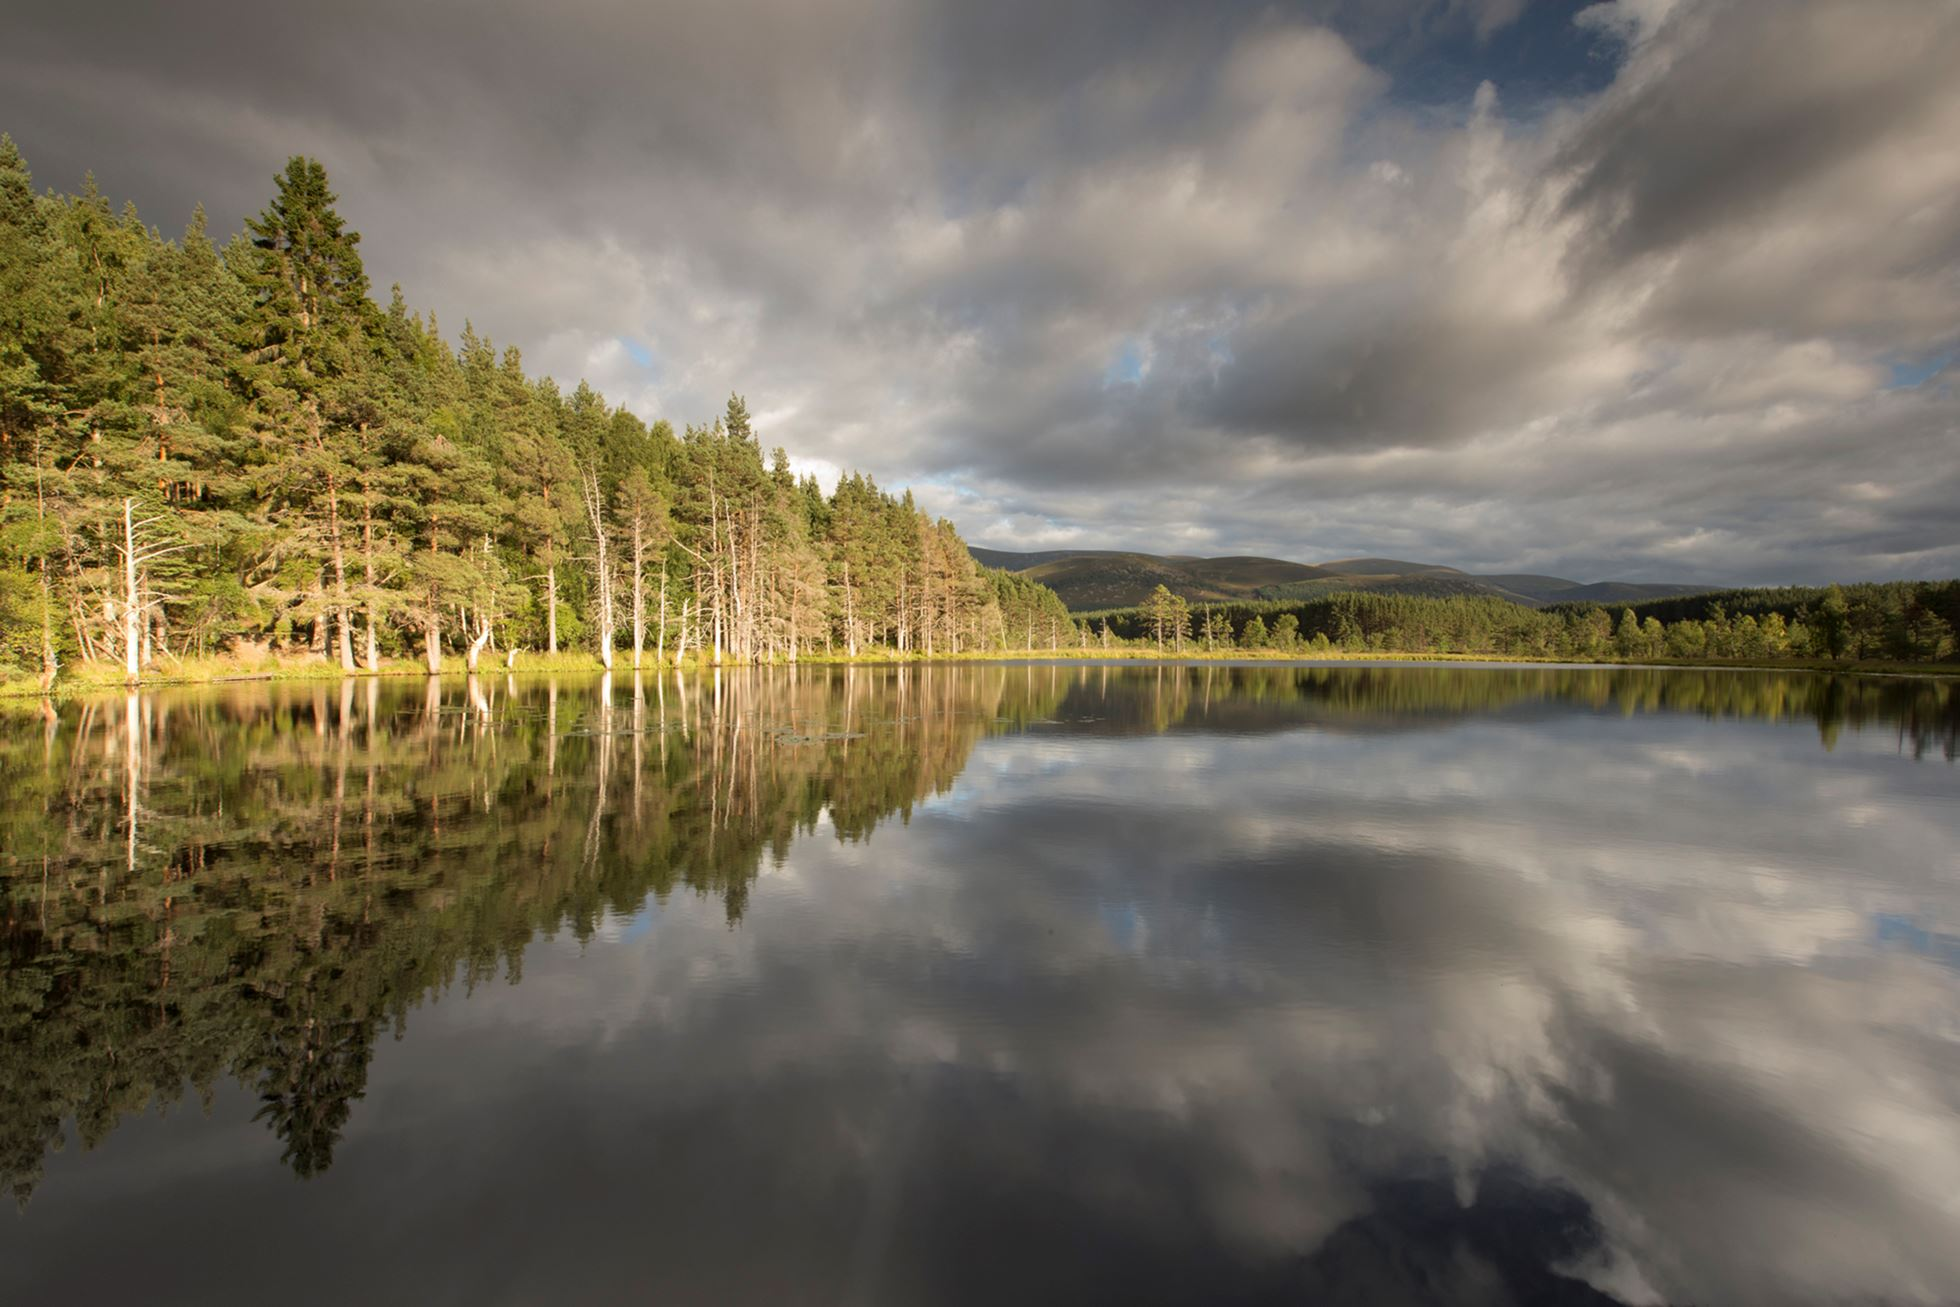 Uath Lochans in evening light, Glenfeshie, Scotland.